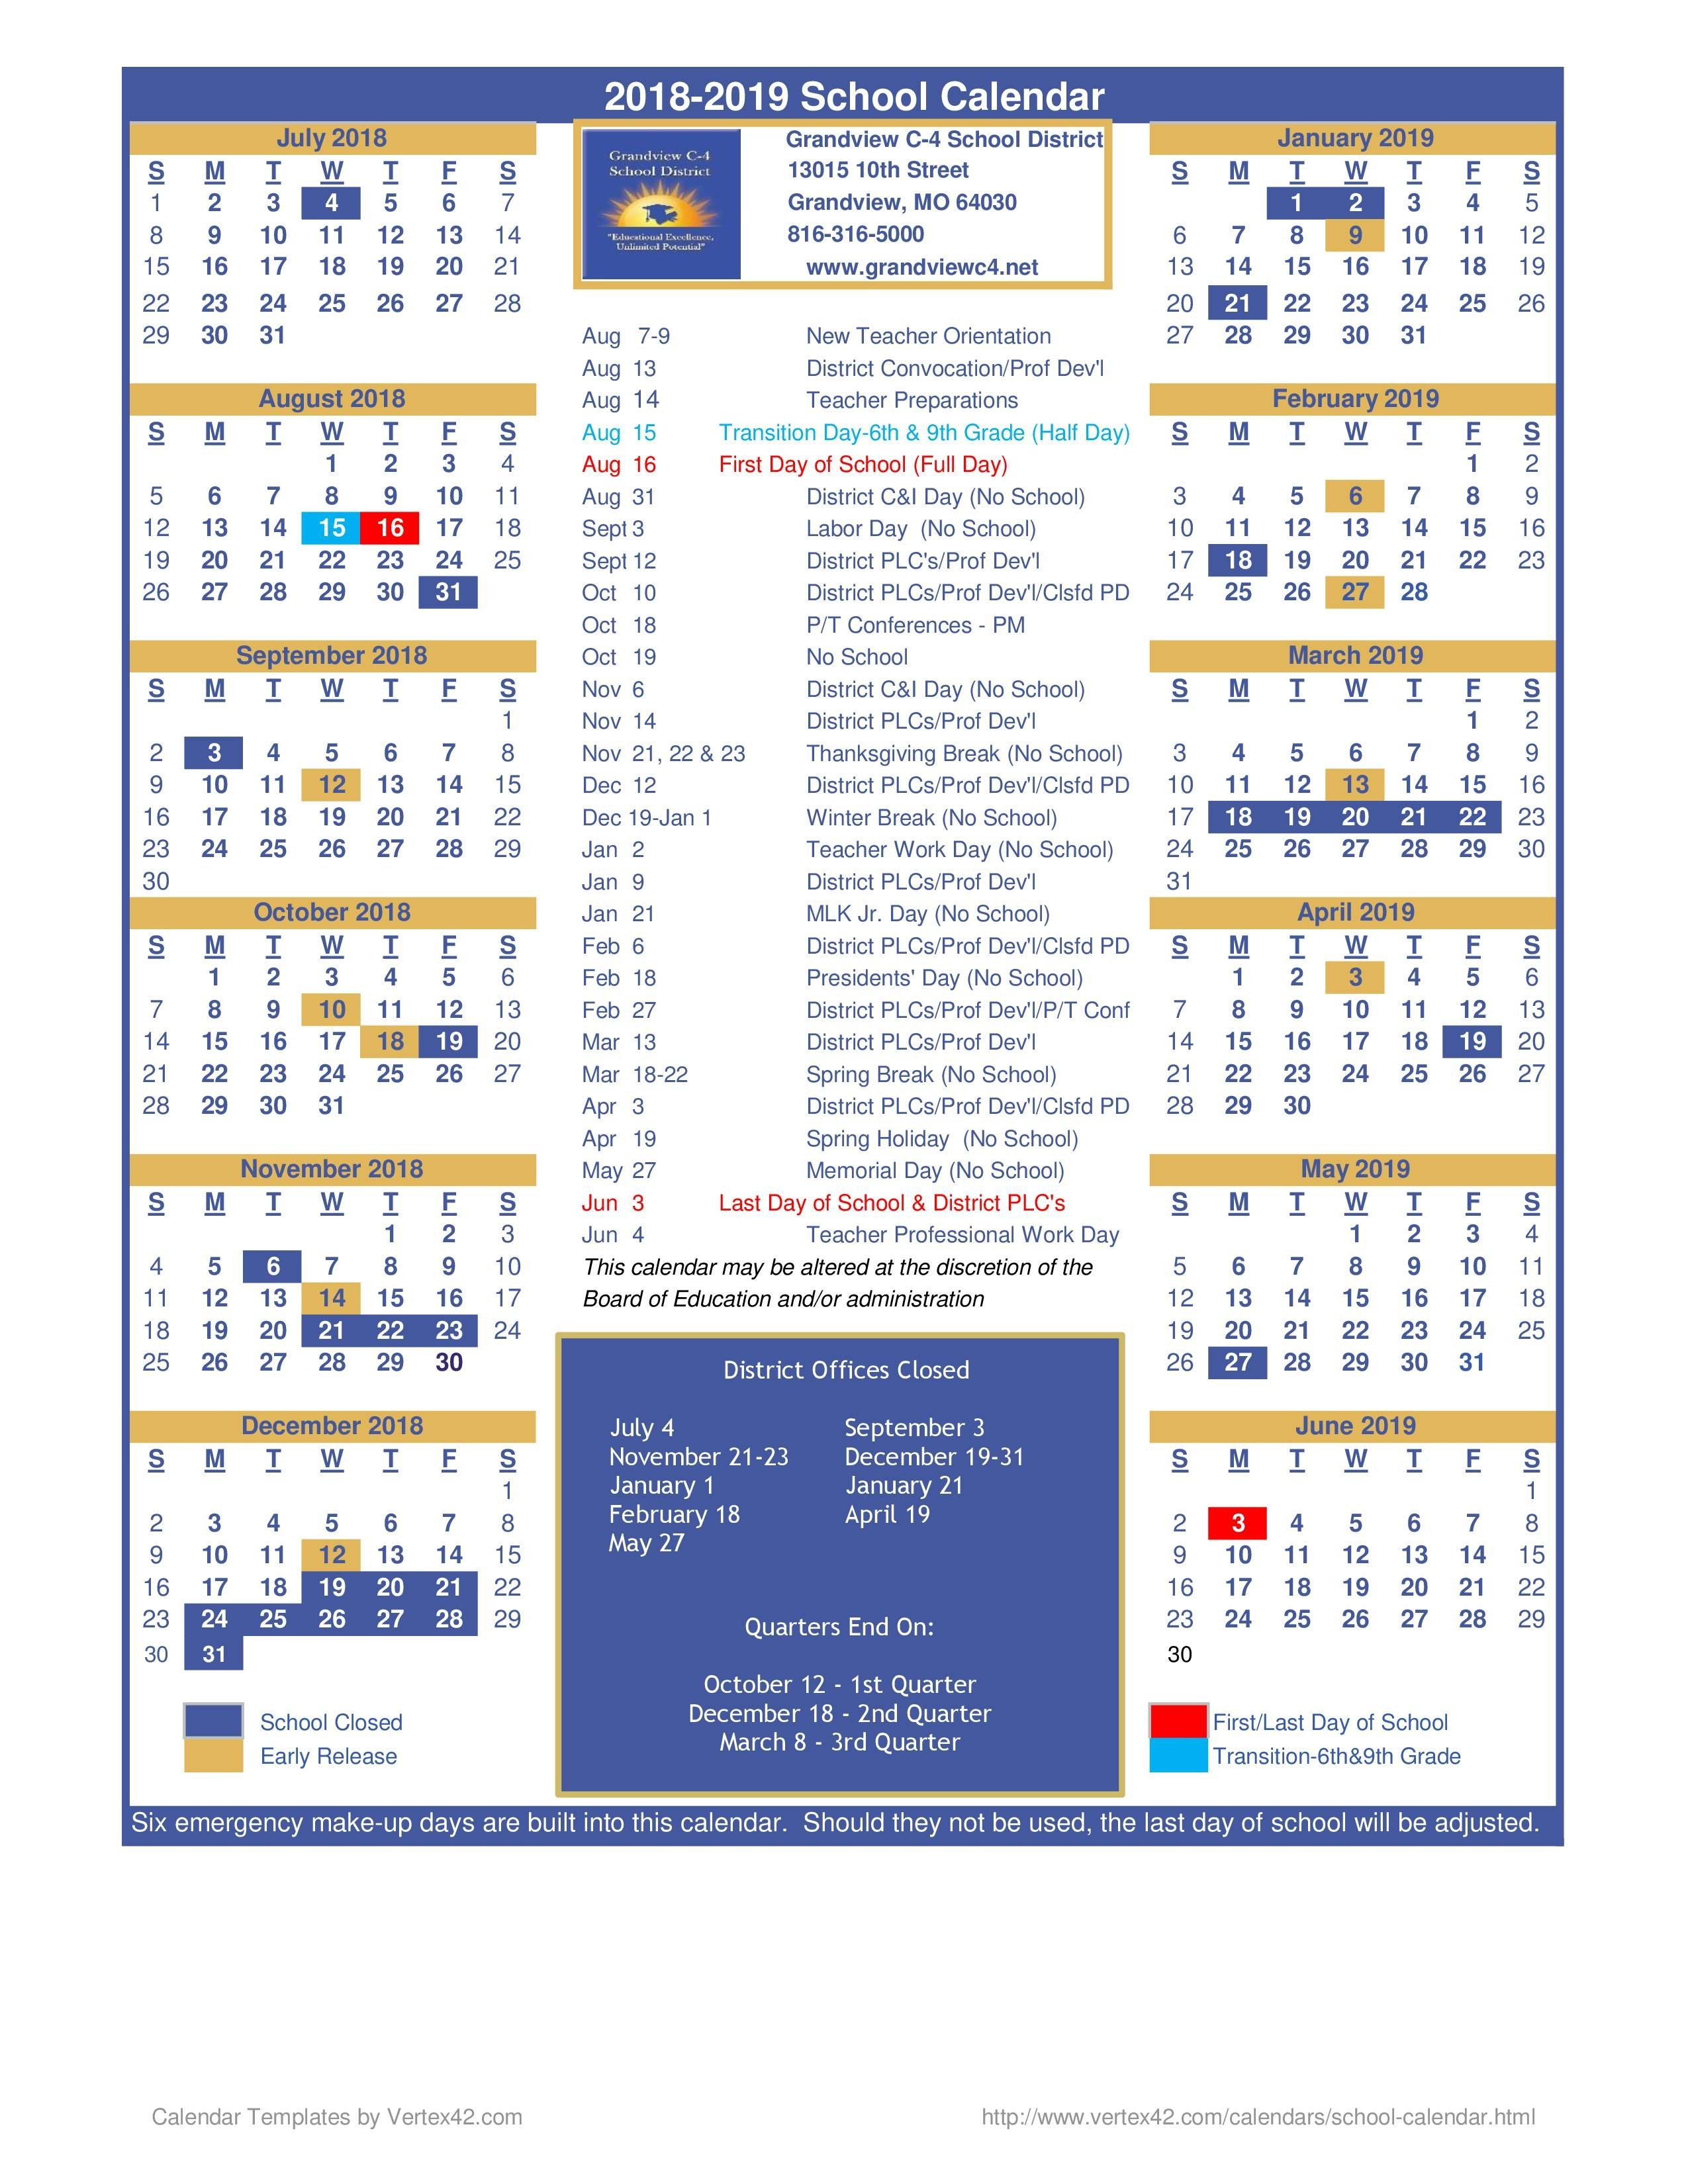 Calendario Escolar 2019 Kinder Más Recientes District Calendar – District Calendar – Grandview C 4 School District Of Calendario Escolar 2019 Kinder Más Reciente 2018 2019 School Year Calendar Upper Canada District School Board